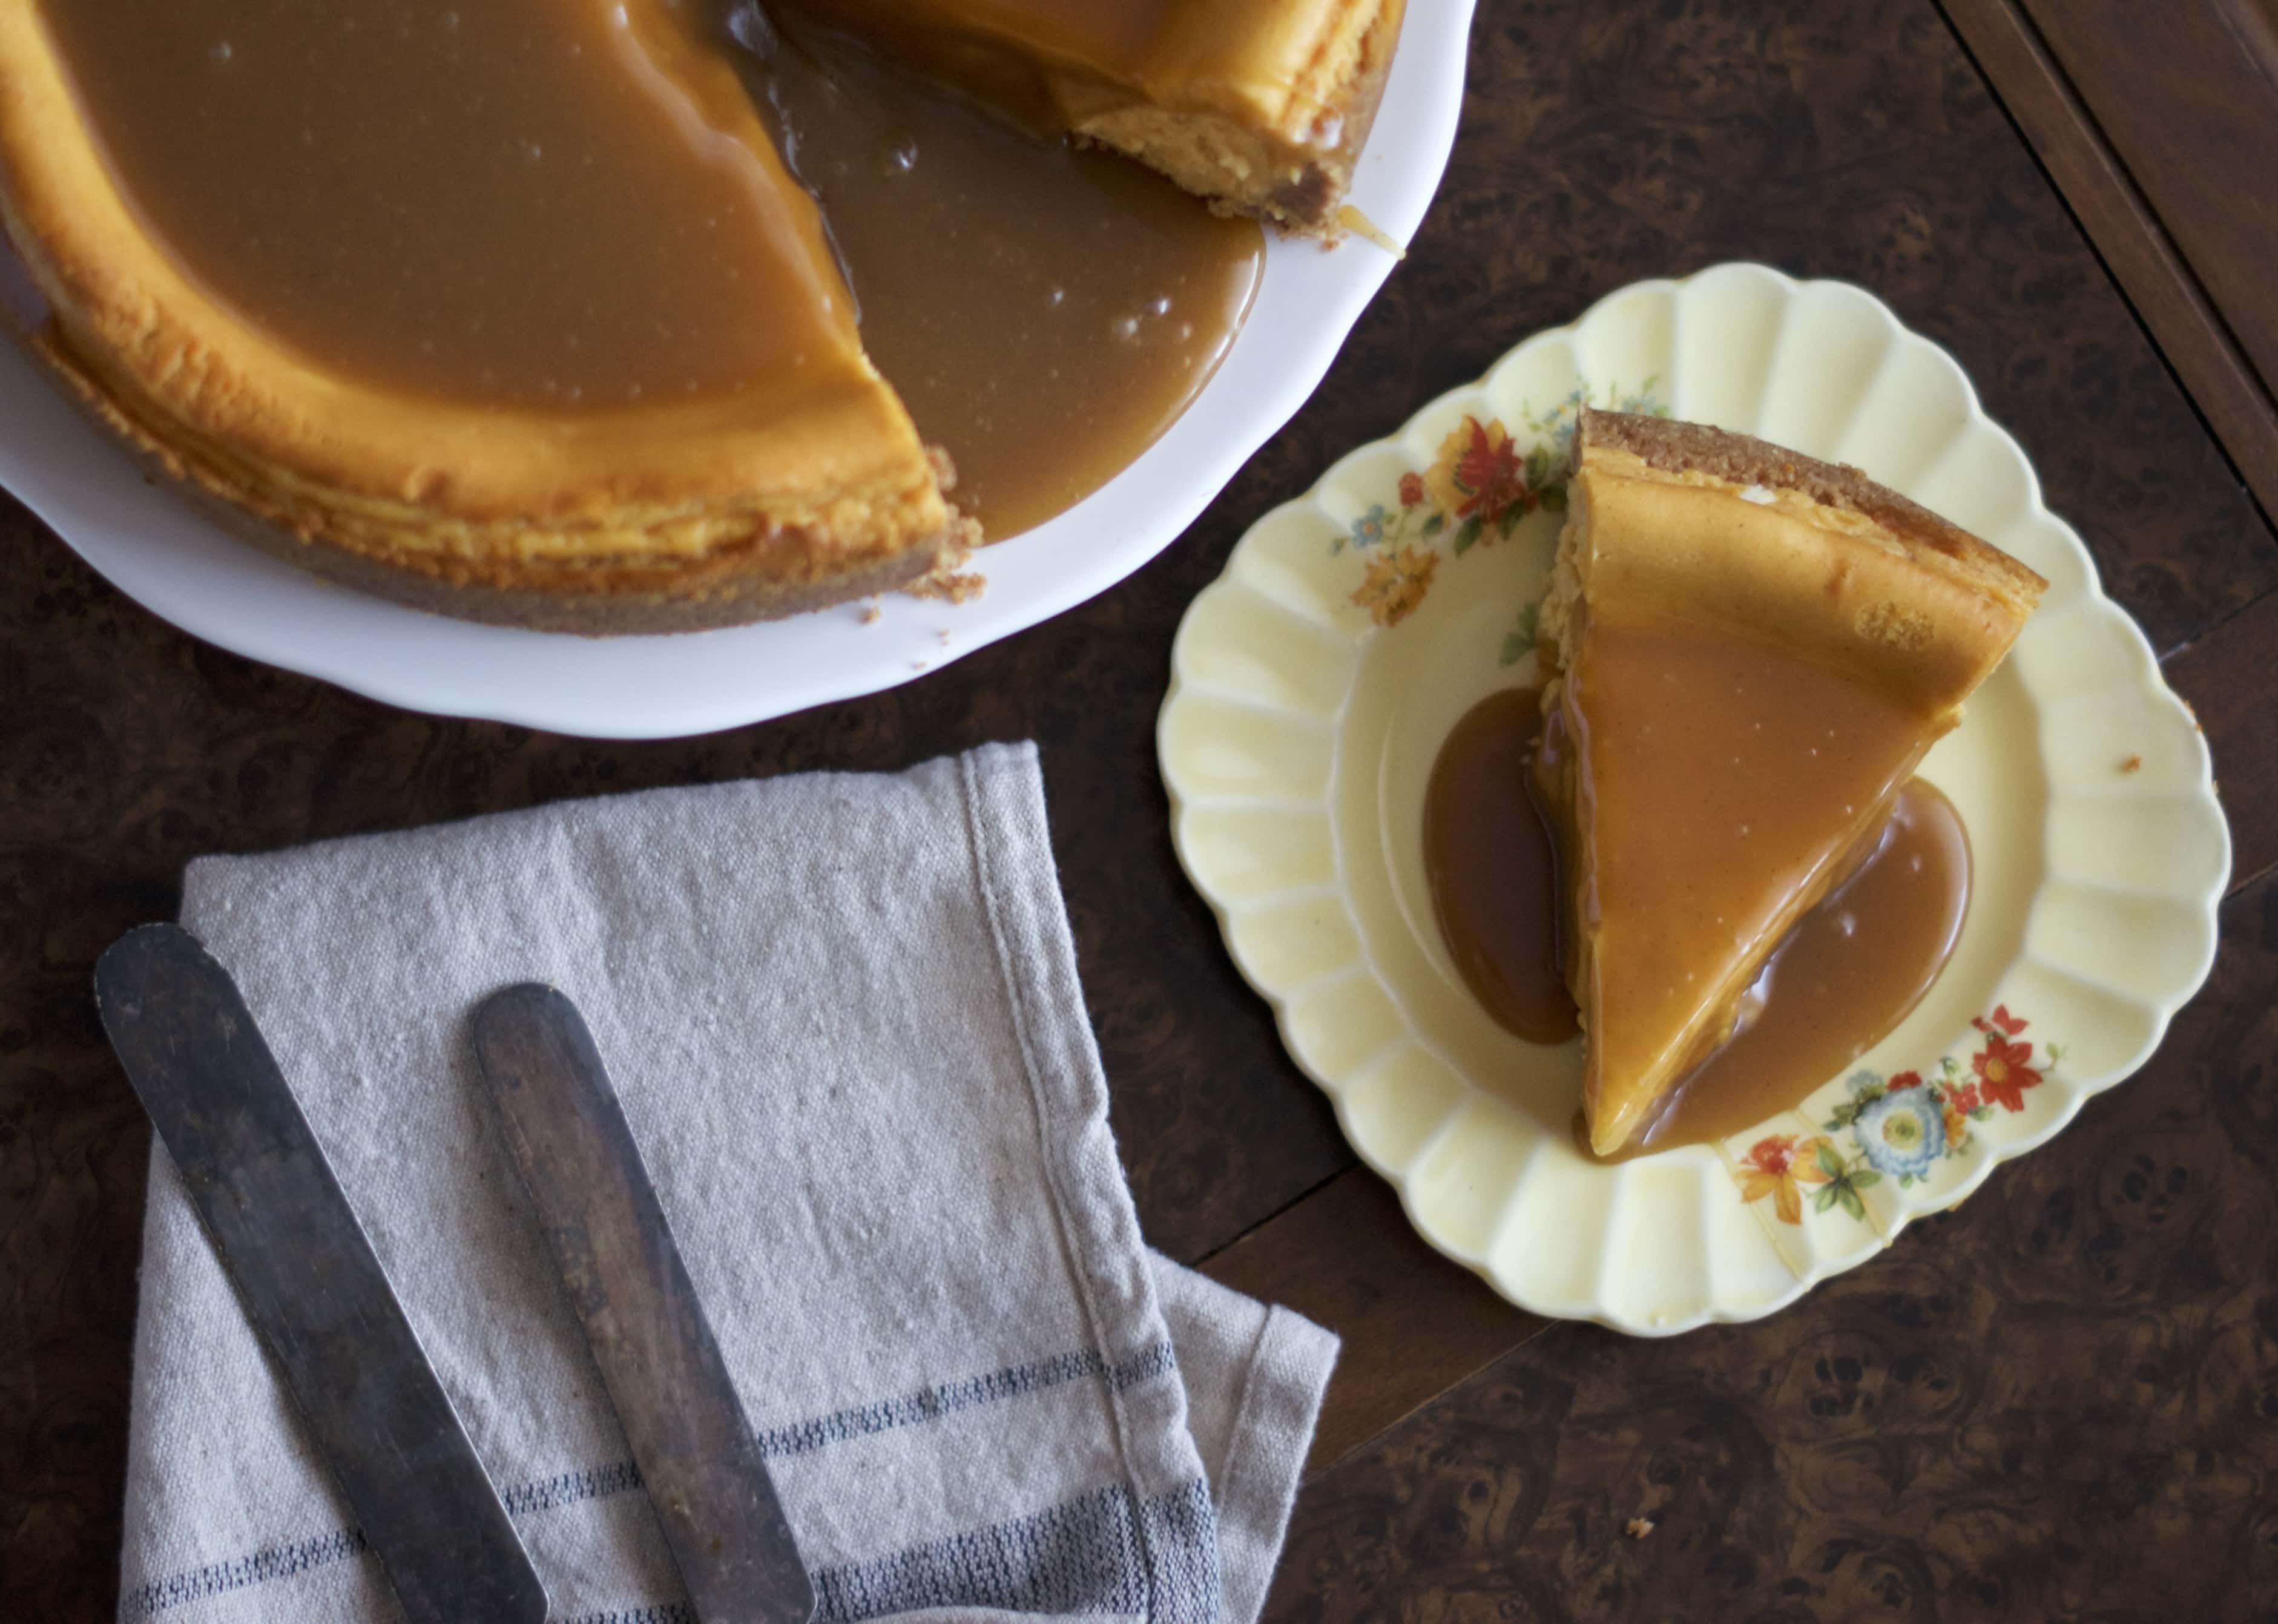 butternut squash cheesecake (with a ritz cracker crust!) | www.midwestniceblog.com